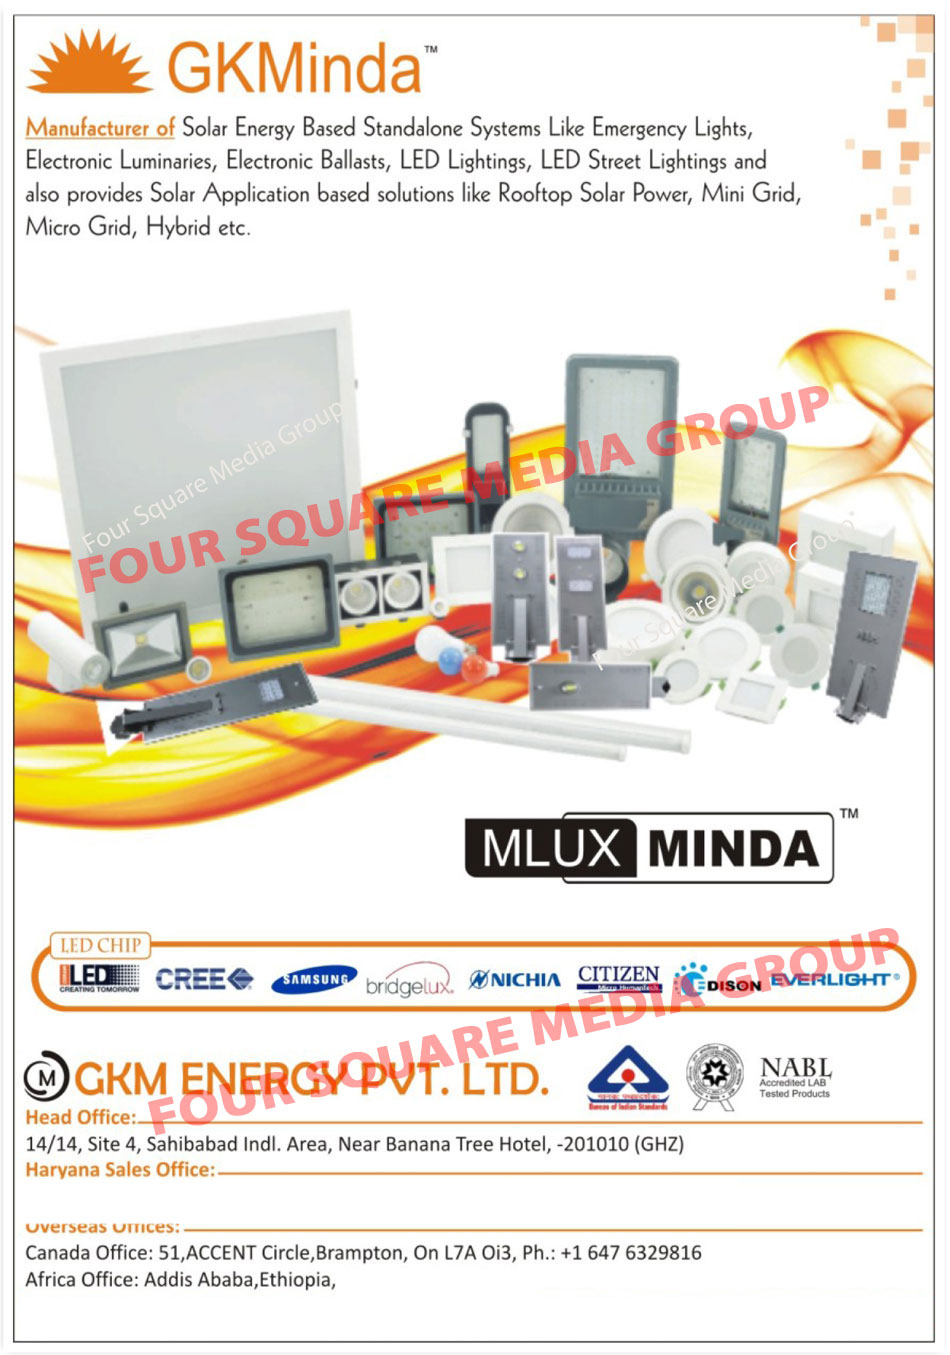 Solar Energy Based Standalone Systems, Emergency Lights, Electronic Luminaries, Electronic Ballast, Led Lights, Led Street Lights, Solar Application Based Solutions, Rooftop Solar Power, Mini Grid, Micro Grid, Hybrid